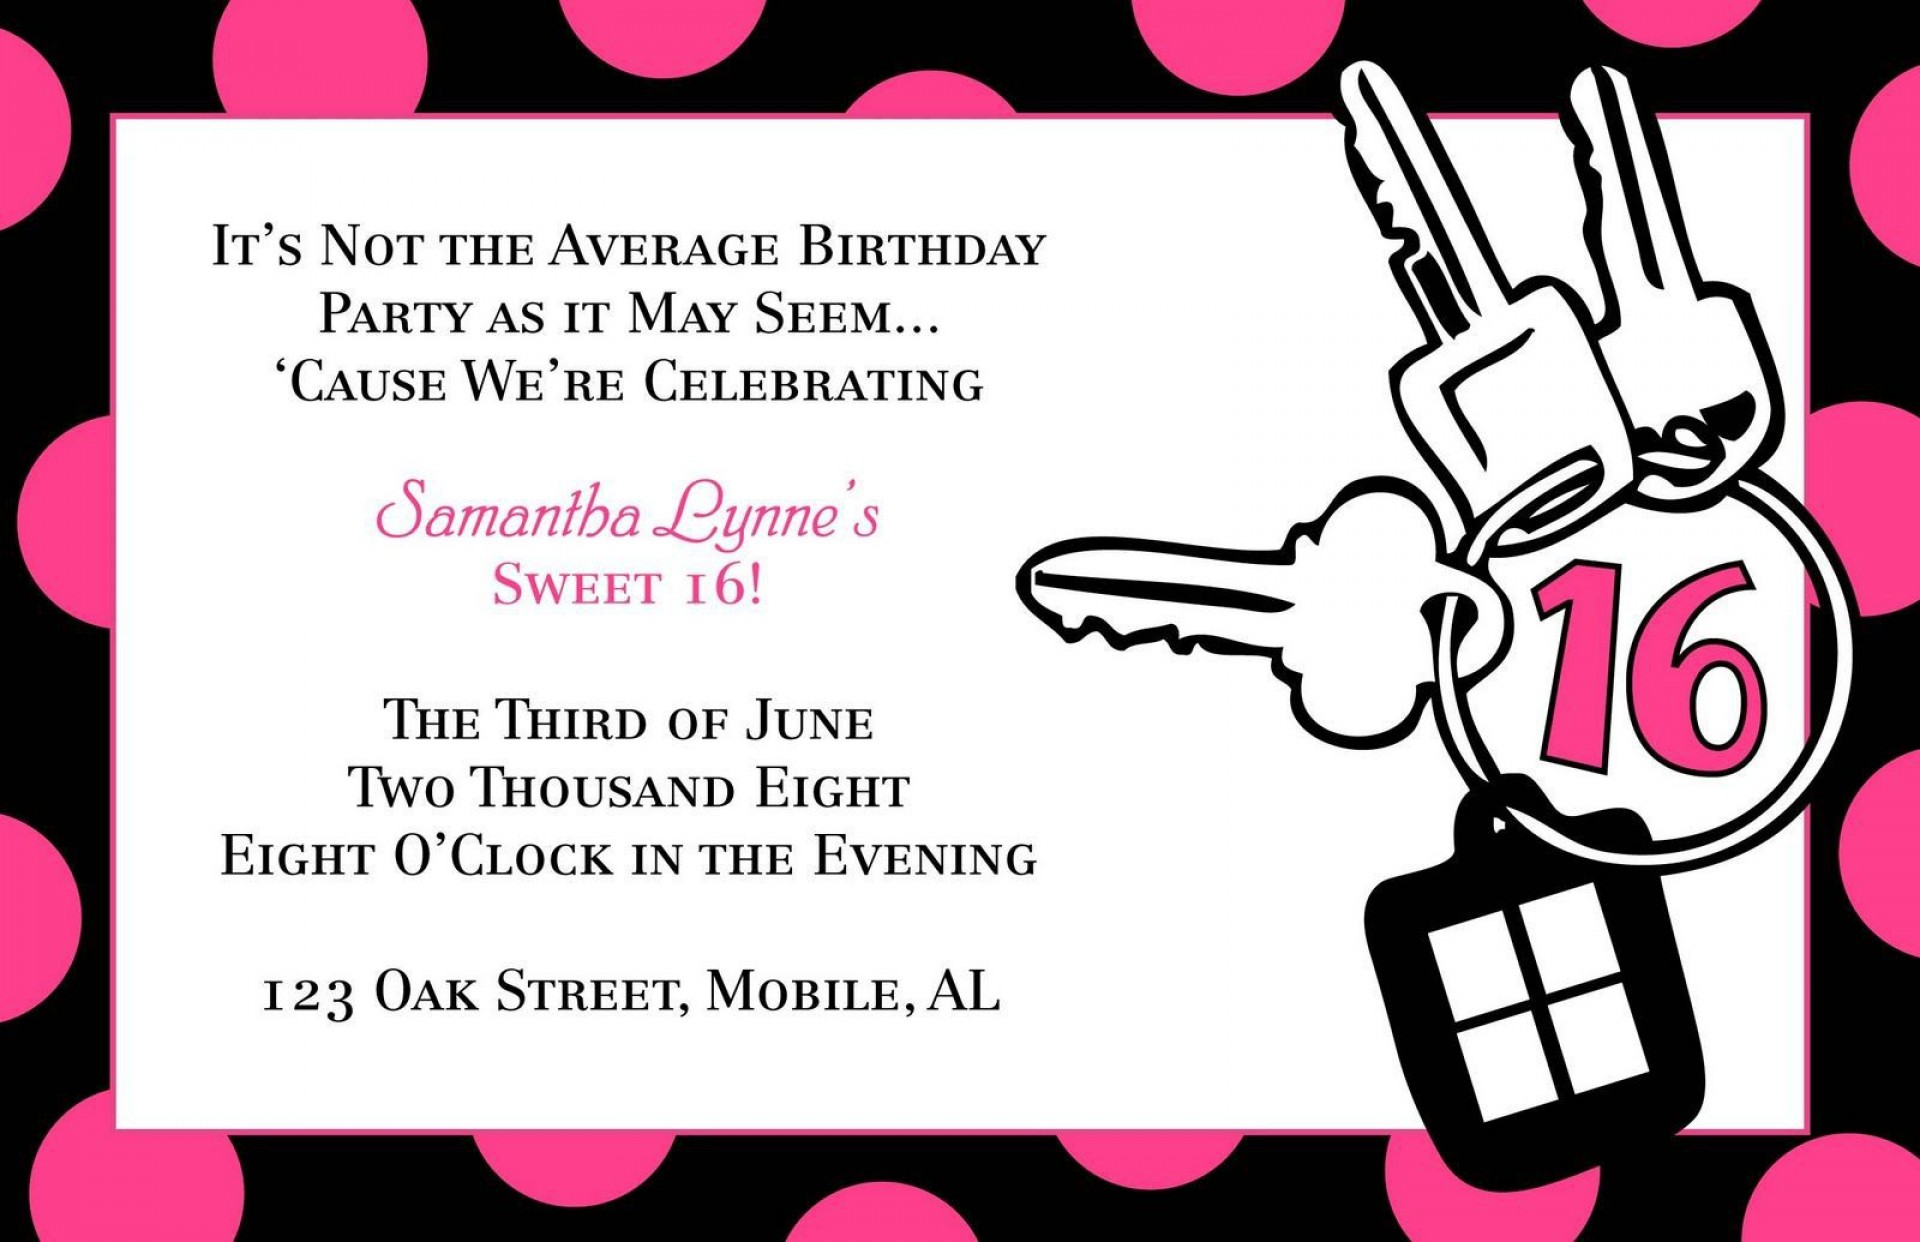 003 Stunning Sweet 16 Invite Template Highest Clarity  Templates Surprise Party Invitation Birthday Free 16th1920